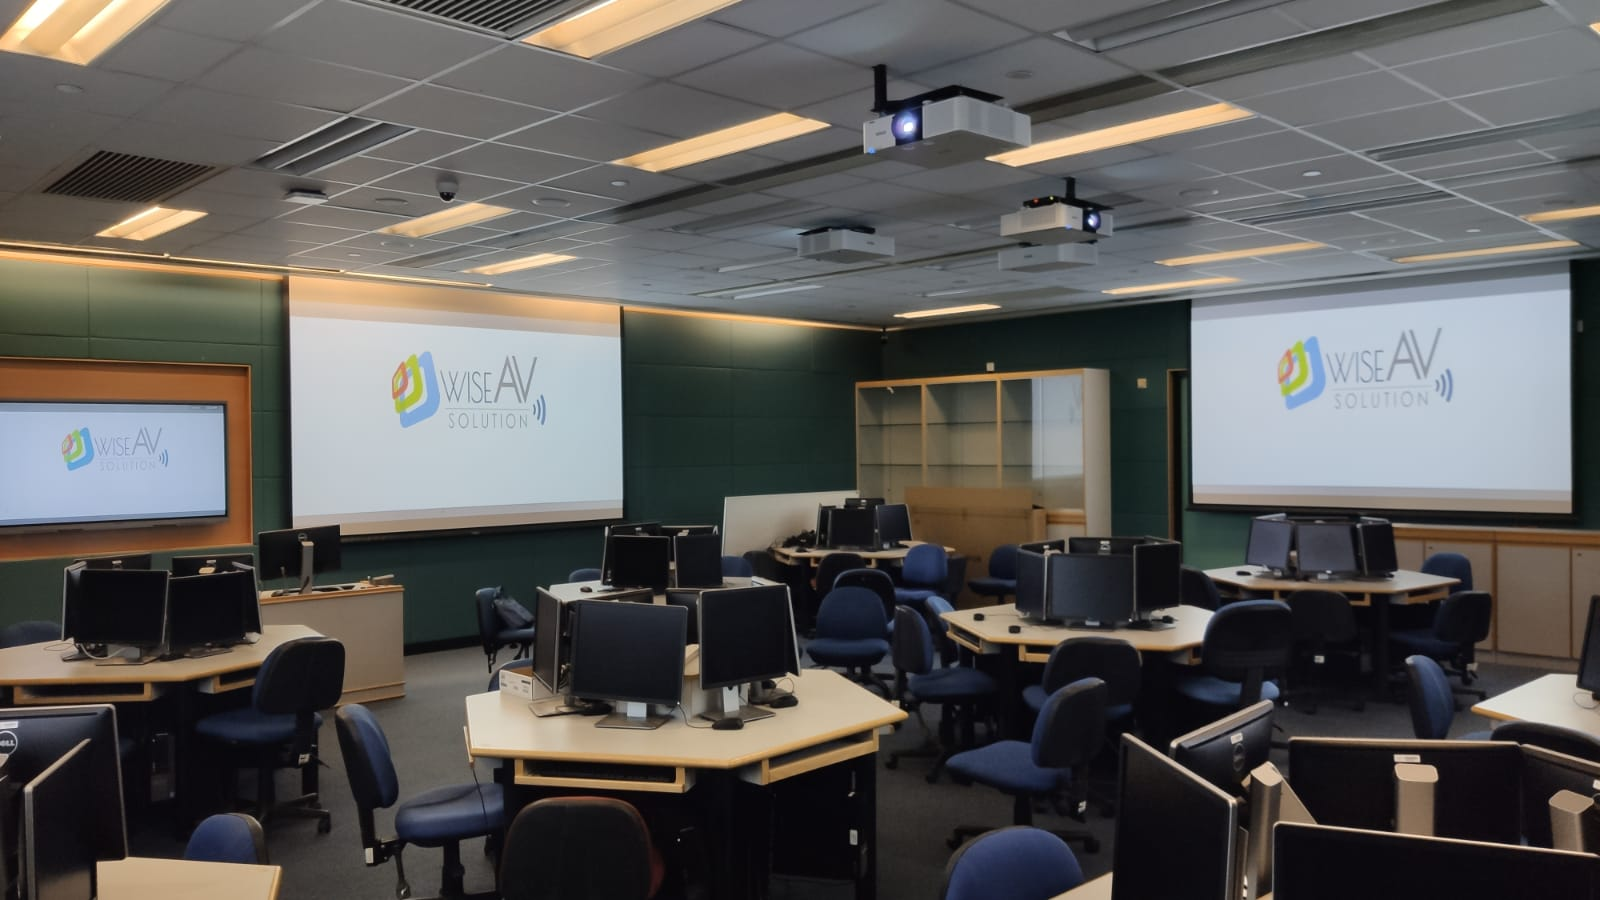 Multi-Media Learning Room for 50 People - WhatsApp Image 2021 03 25 at 17.54.23 1